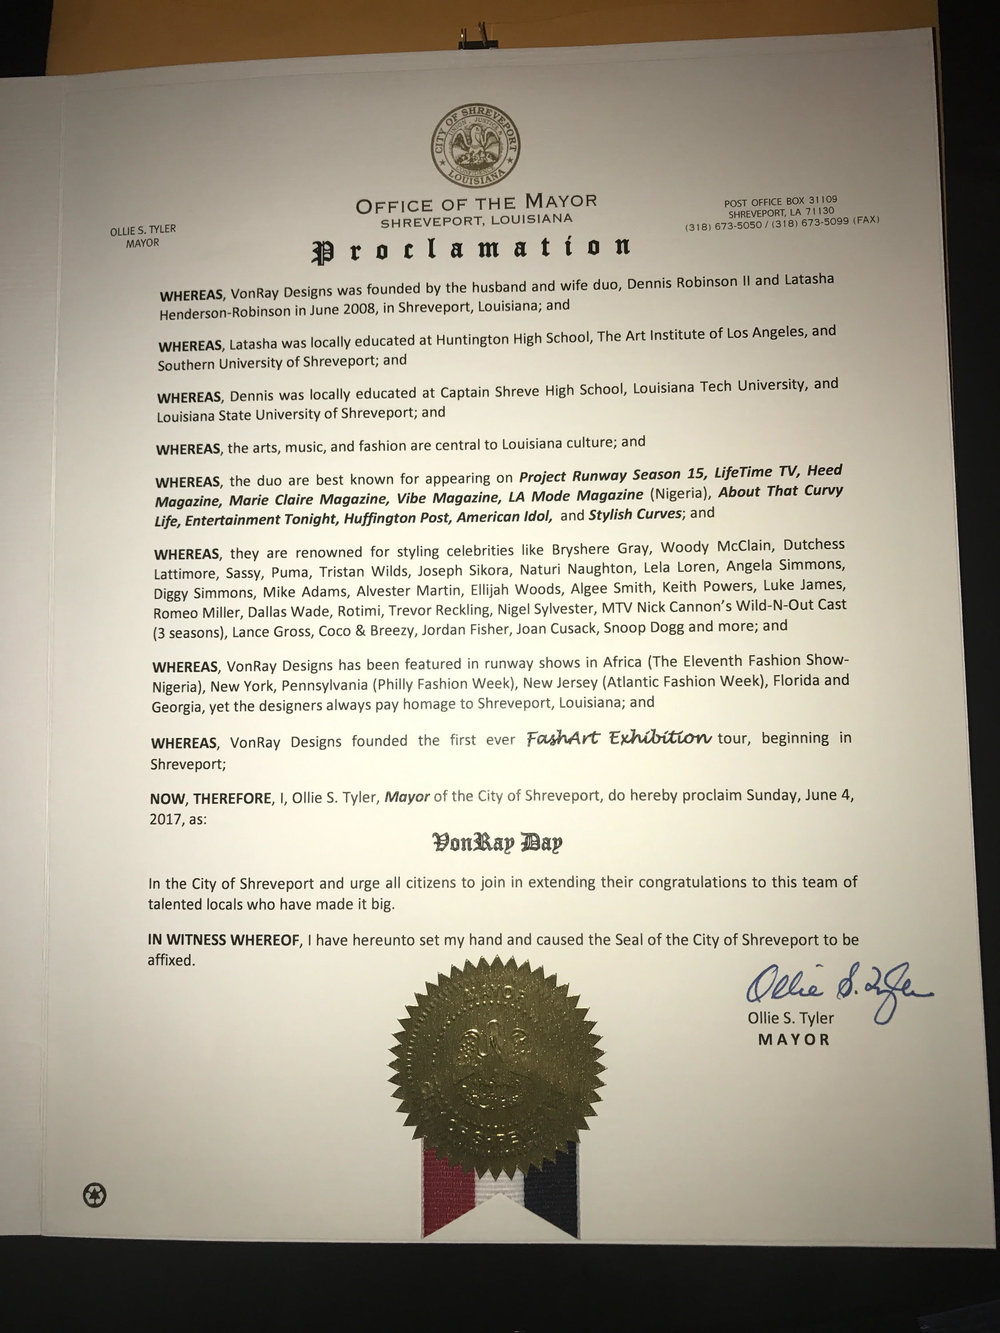 Official Proclamation for VonRay Day on June 4